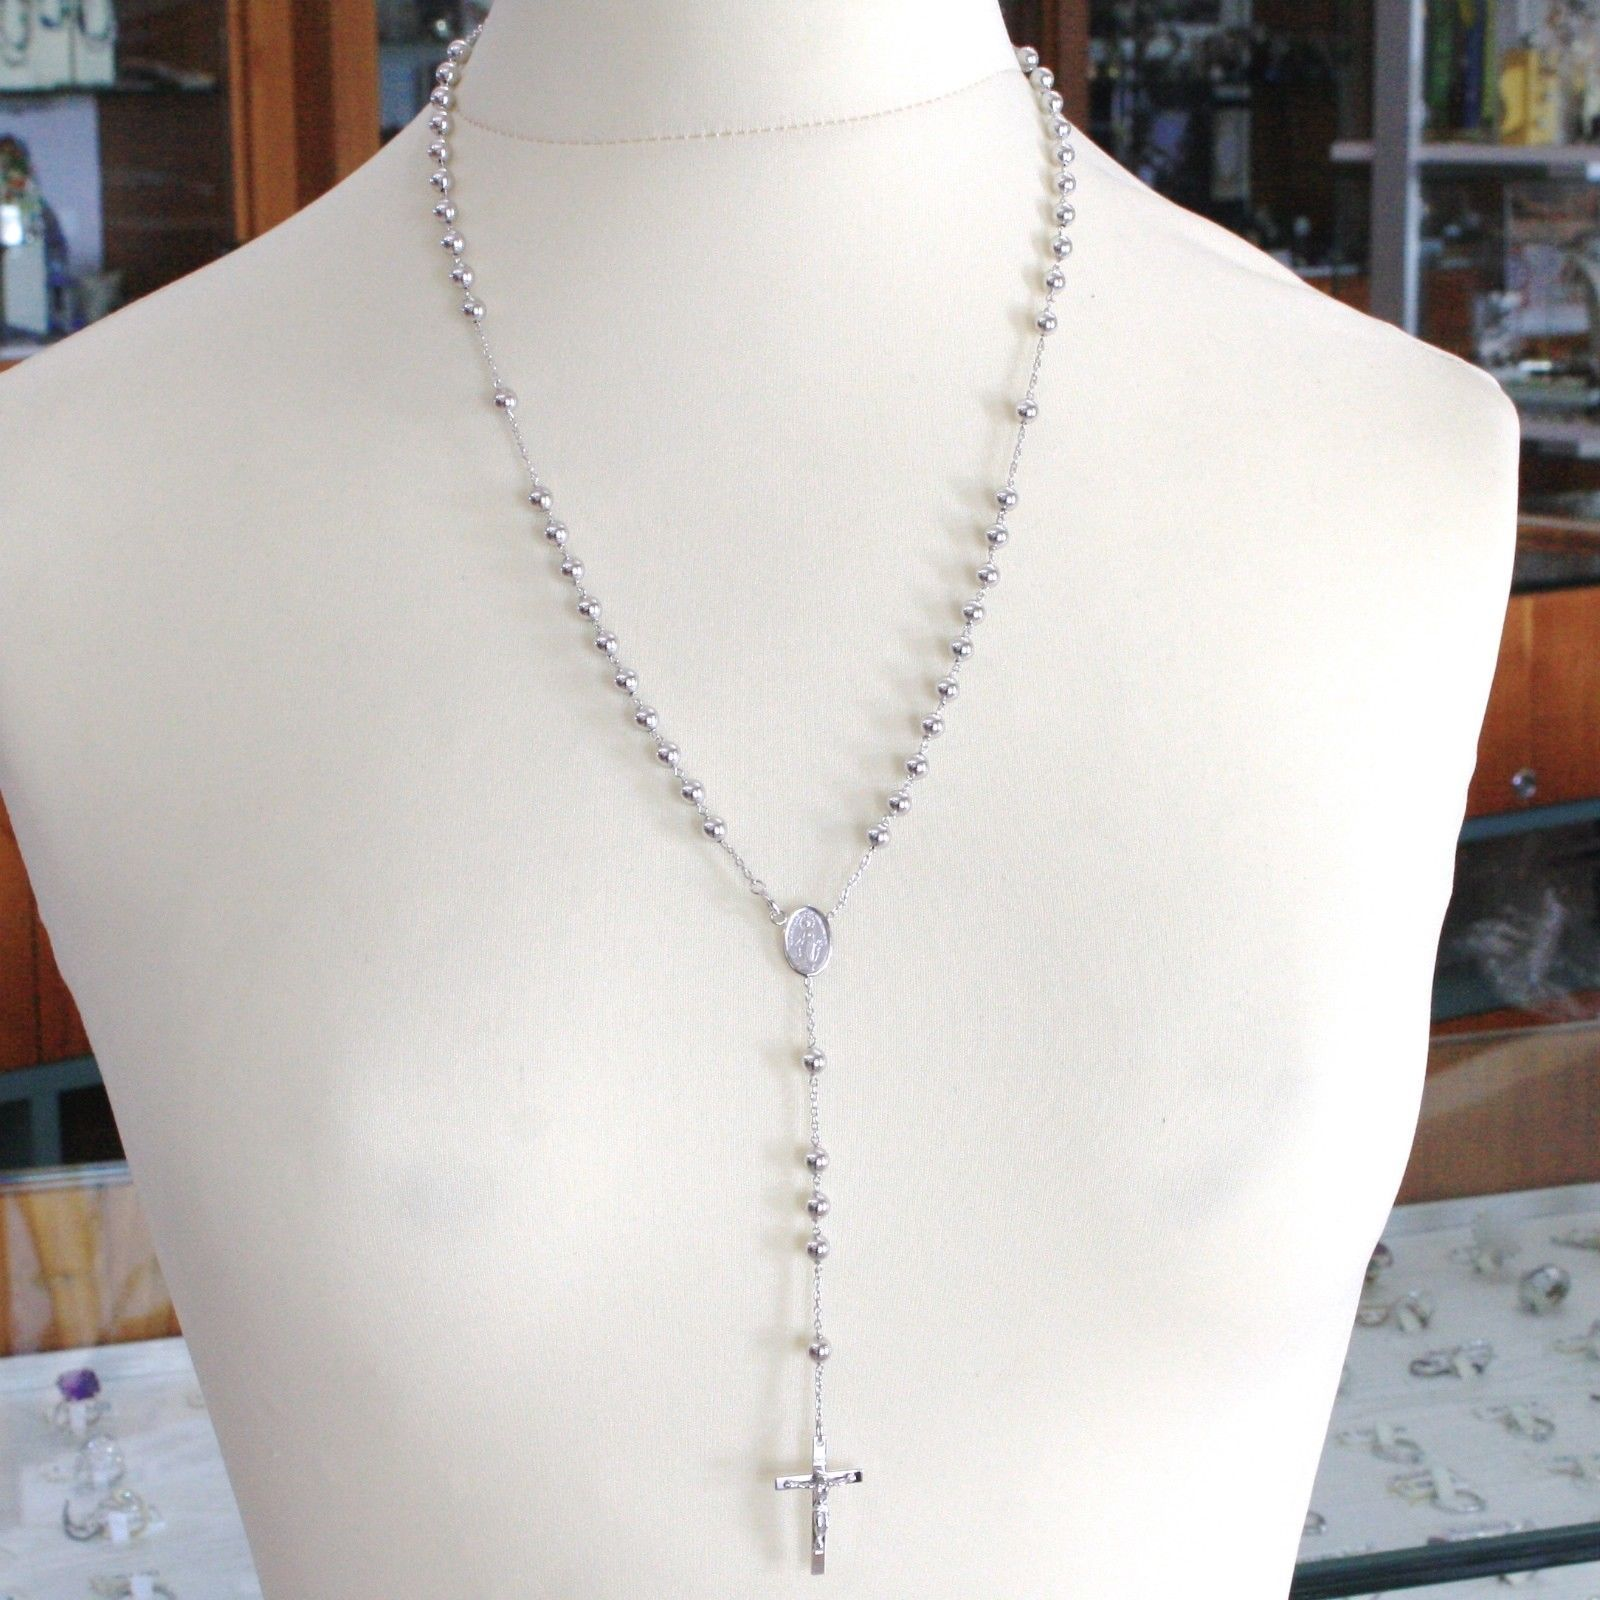 18K WHITE GOLD BIG ROSARY NECKLACE MIRACULOUS MARY MEDAL & JESUS CROSS, 23 INCH.